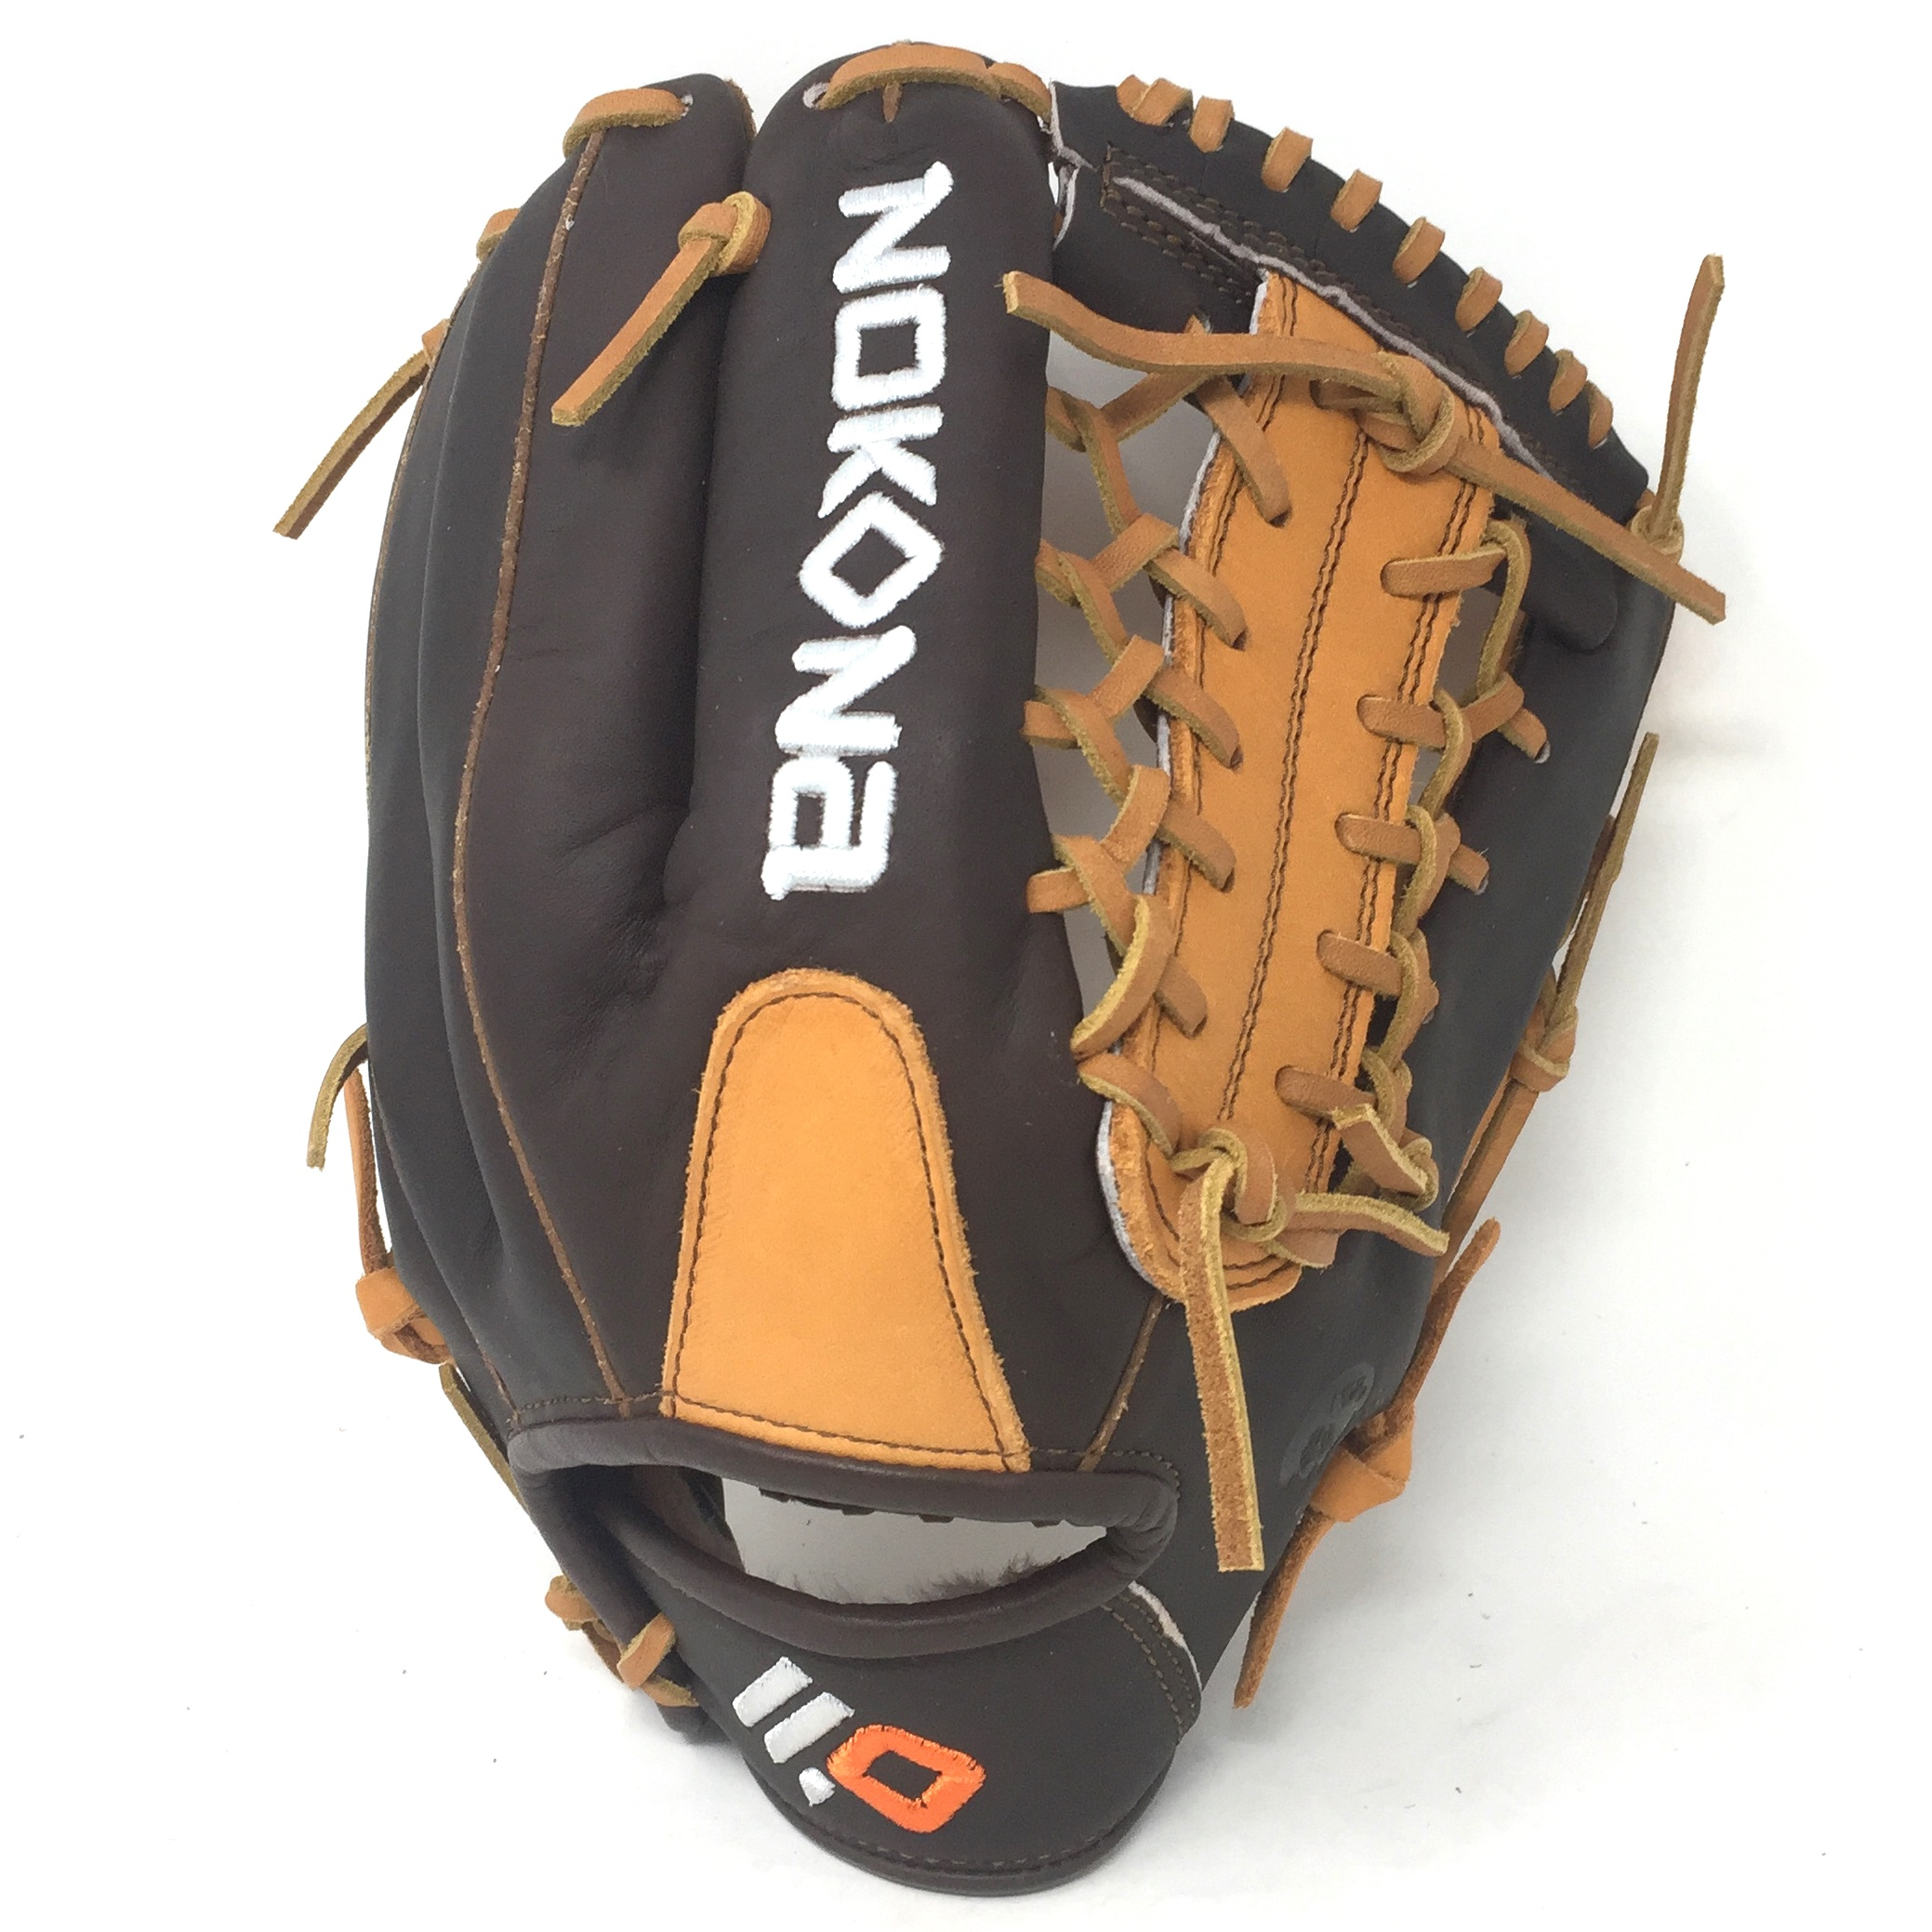 nokona-youth-alpha-11-25-baseball-glove-2020-right-hand-throw S-200M-2020-RightHandThrow  808808893844 The Alpha series is built using the highest-quality leathers so that